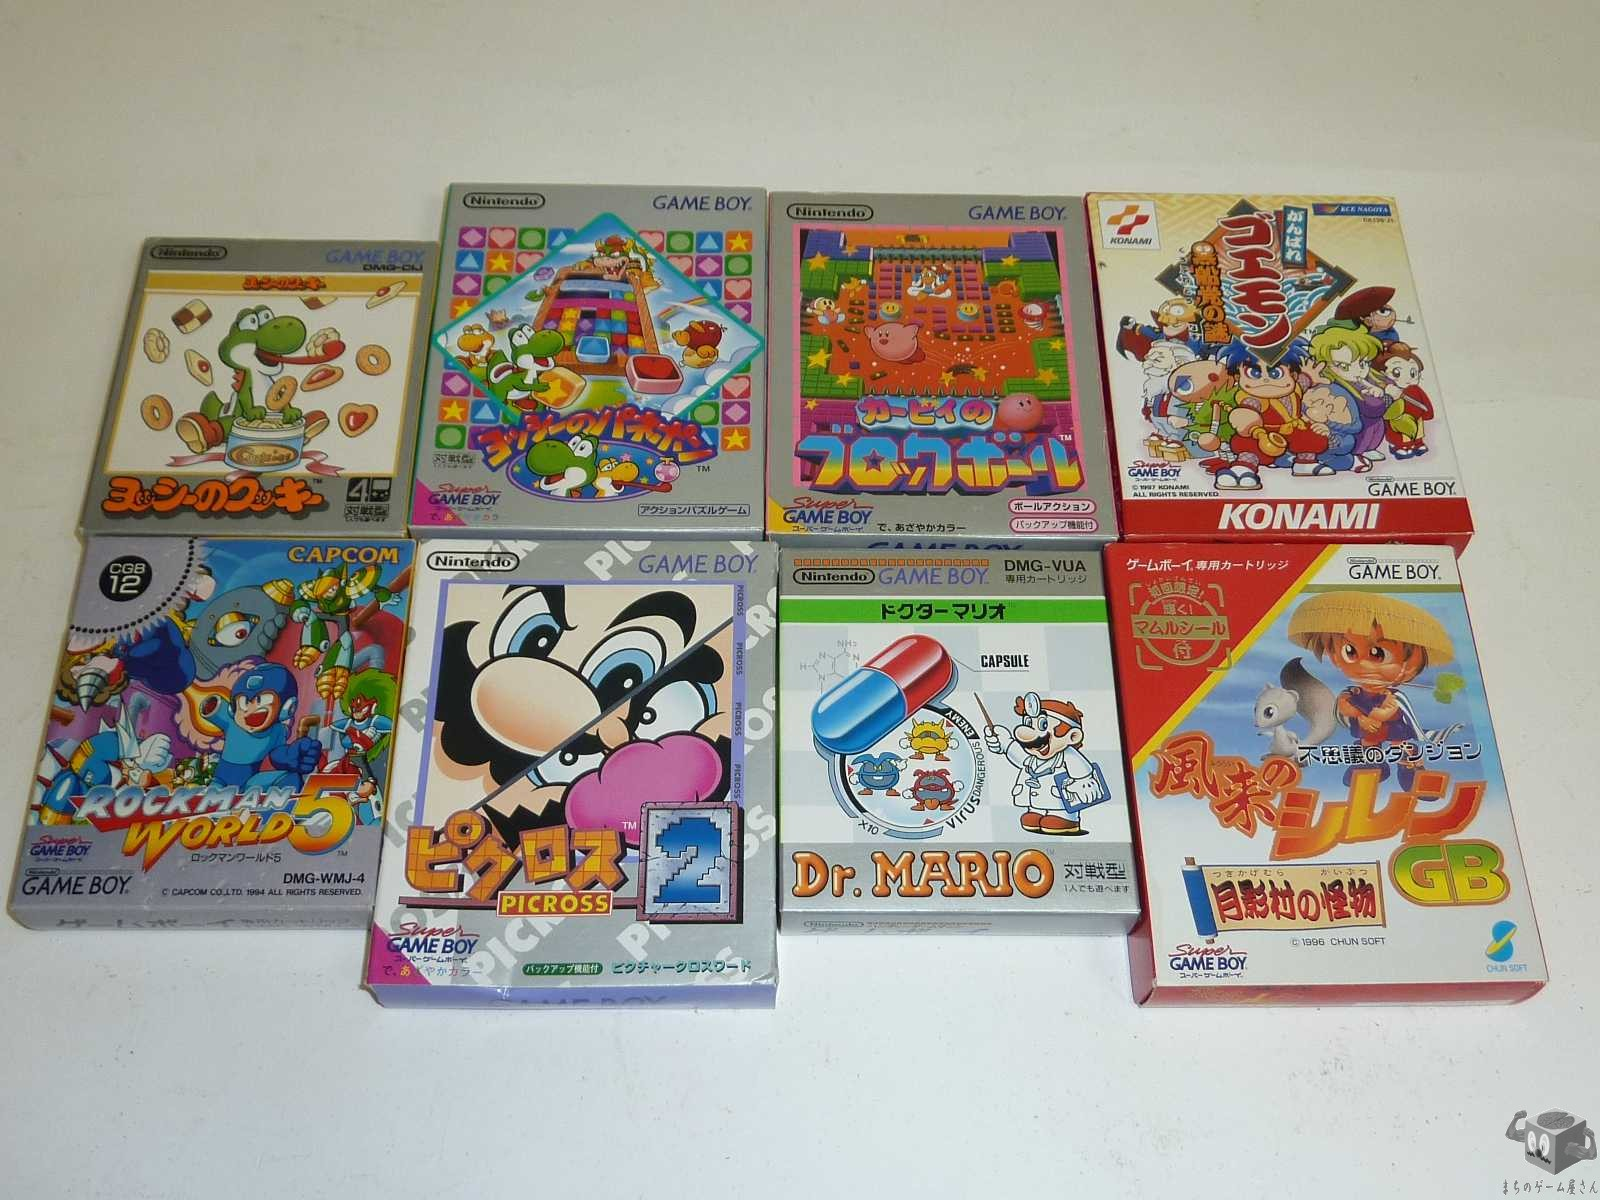 [GB] Rockman World 5 - Mega Man...etc 8 Games Set